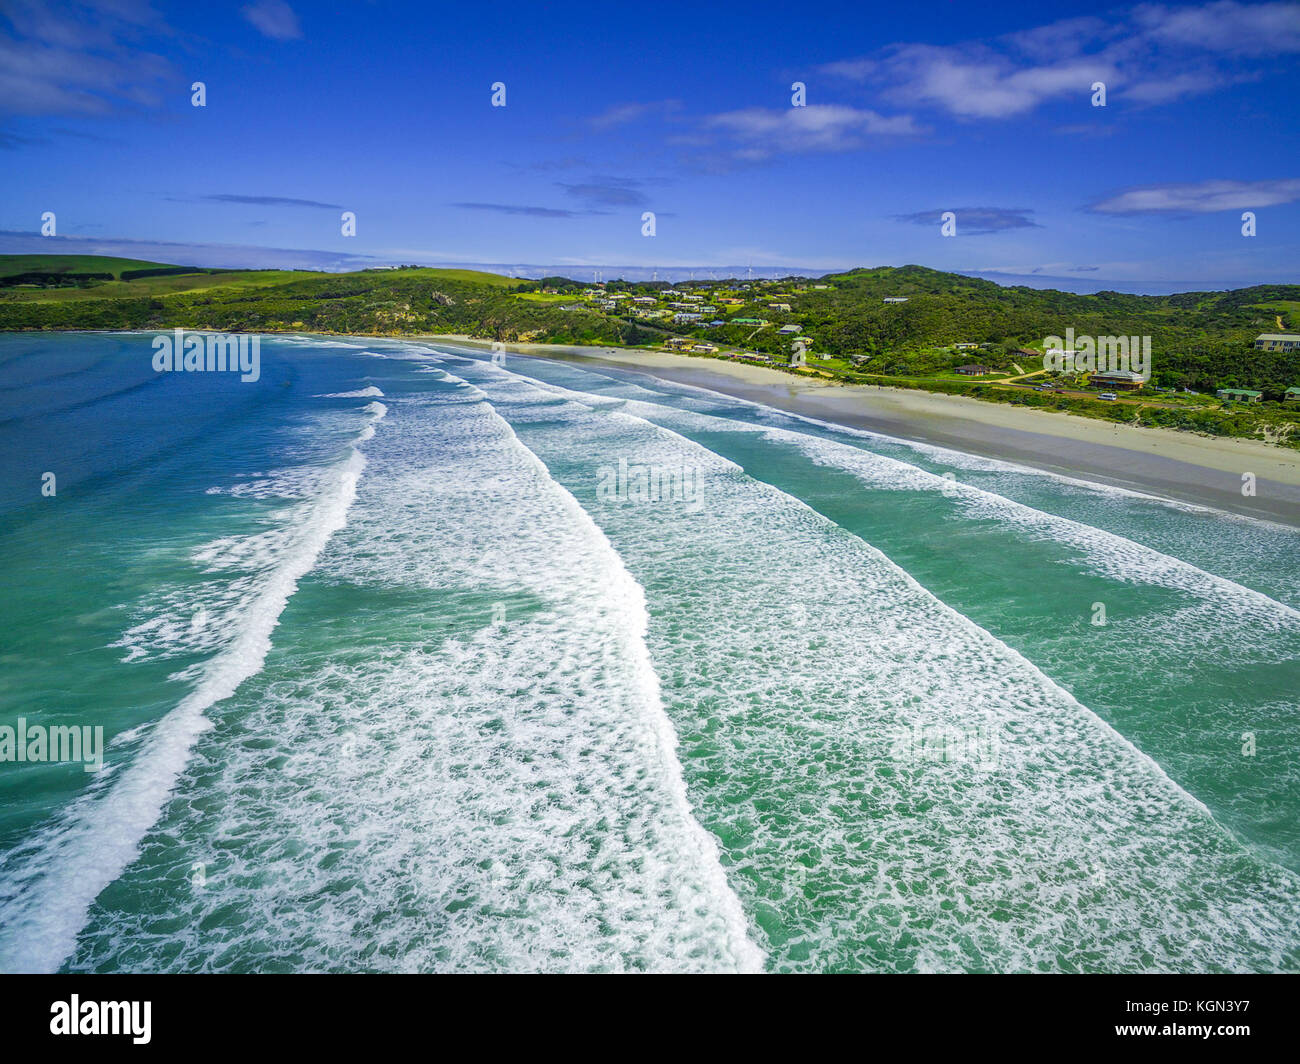 Aerial view of crushing ocean waves and white sandy beach - Stock Image